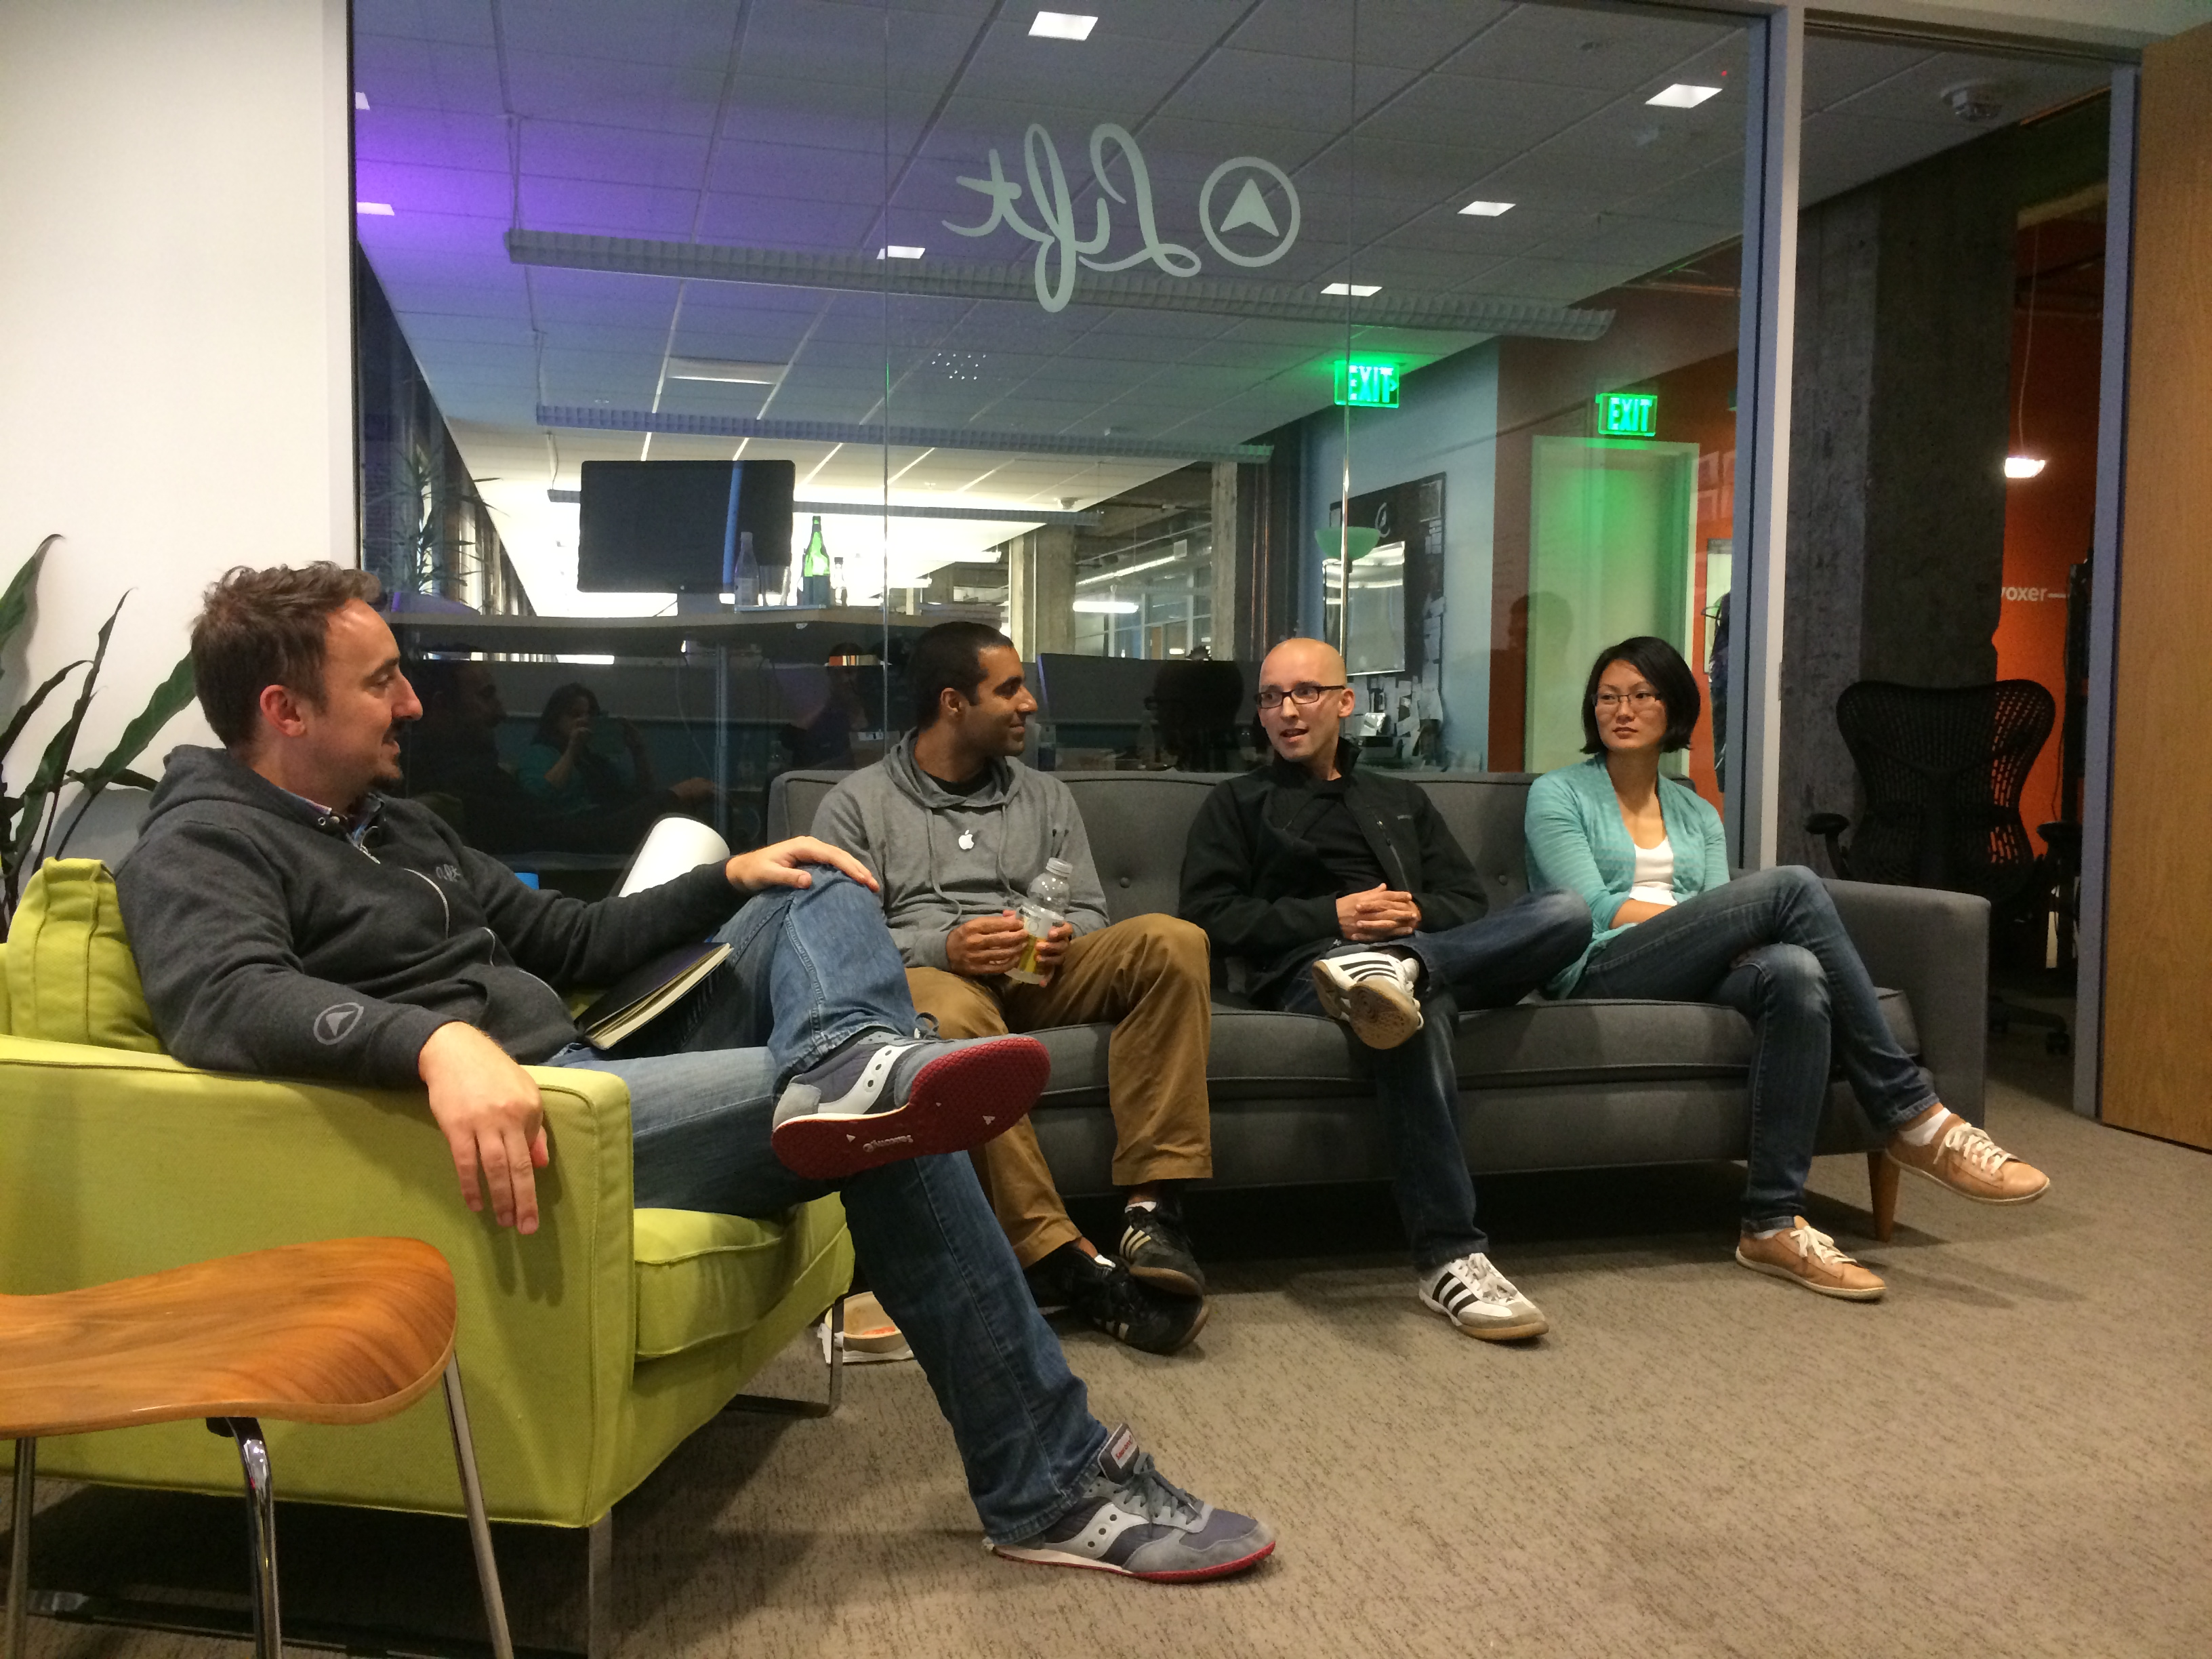 How to Keep a Daily Meditation Practice: Tips from our First Lift Meetup